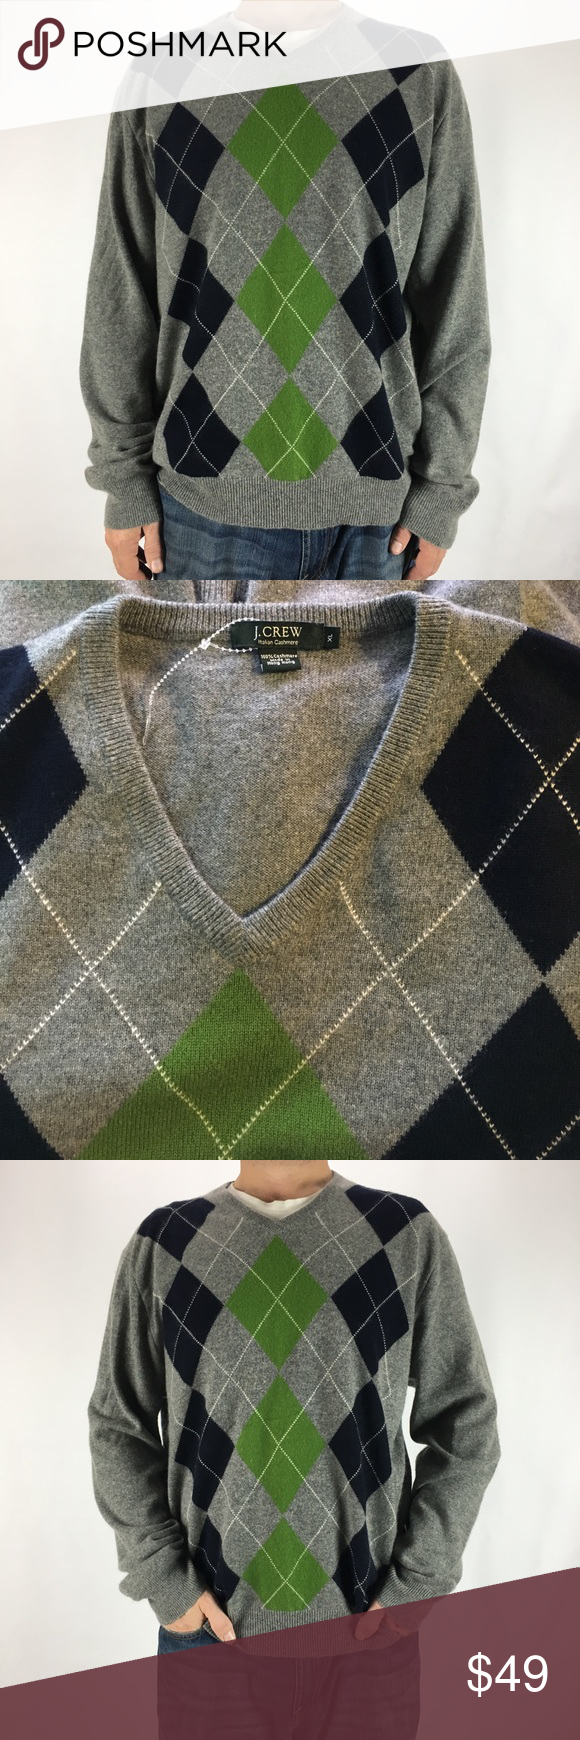 Men's J.CREW Italian Cashmere Argyle Sweater XL | Navy green ...